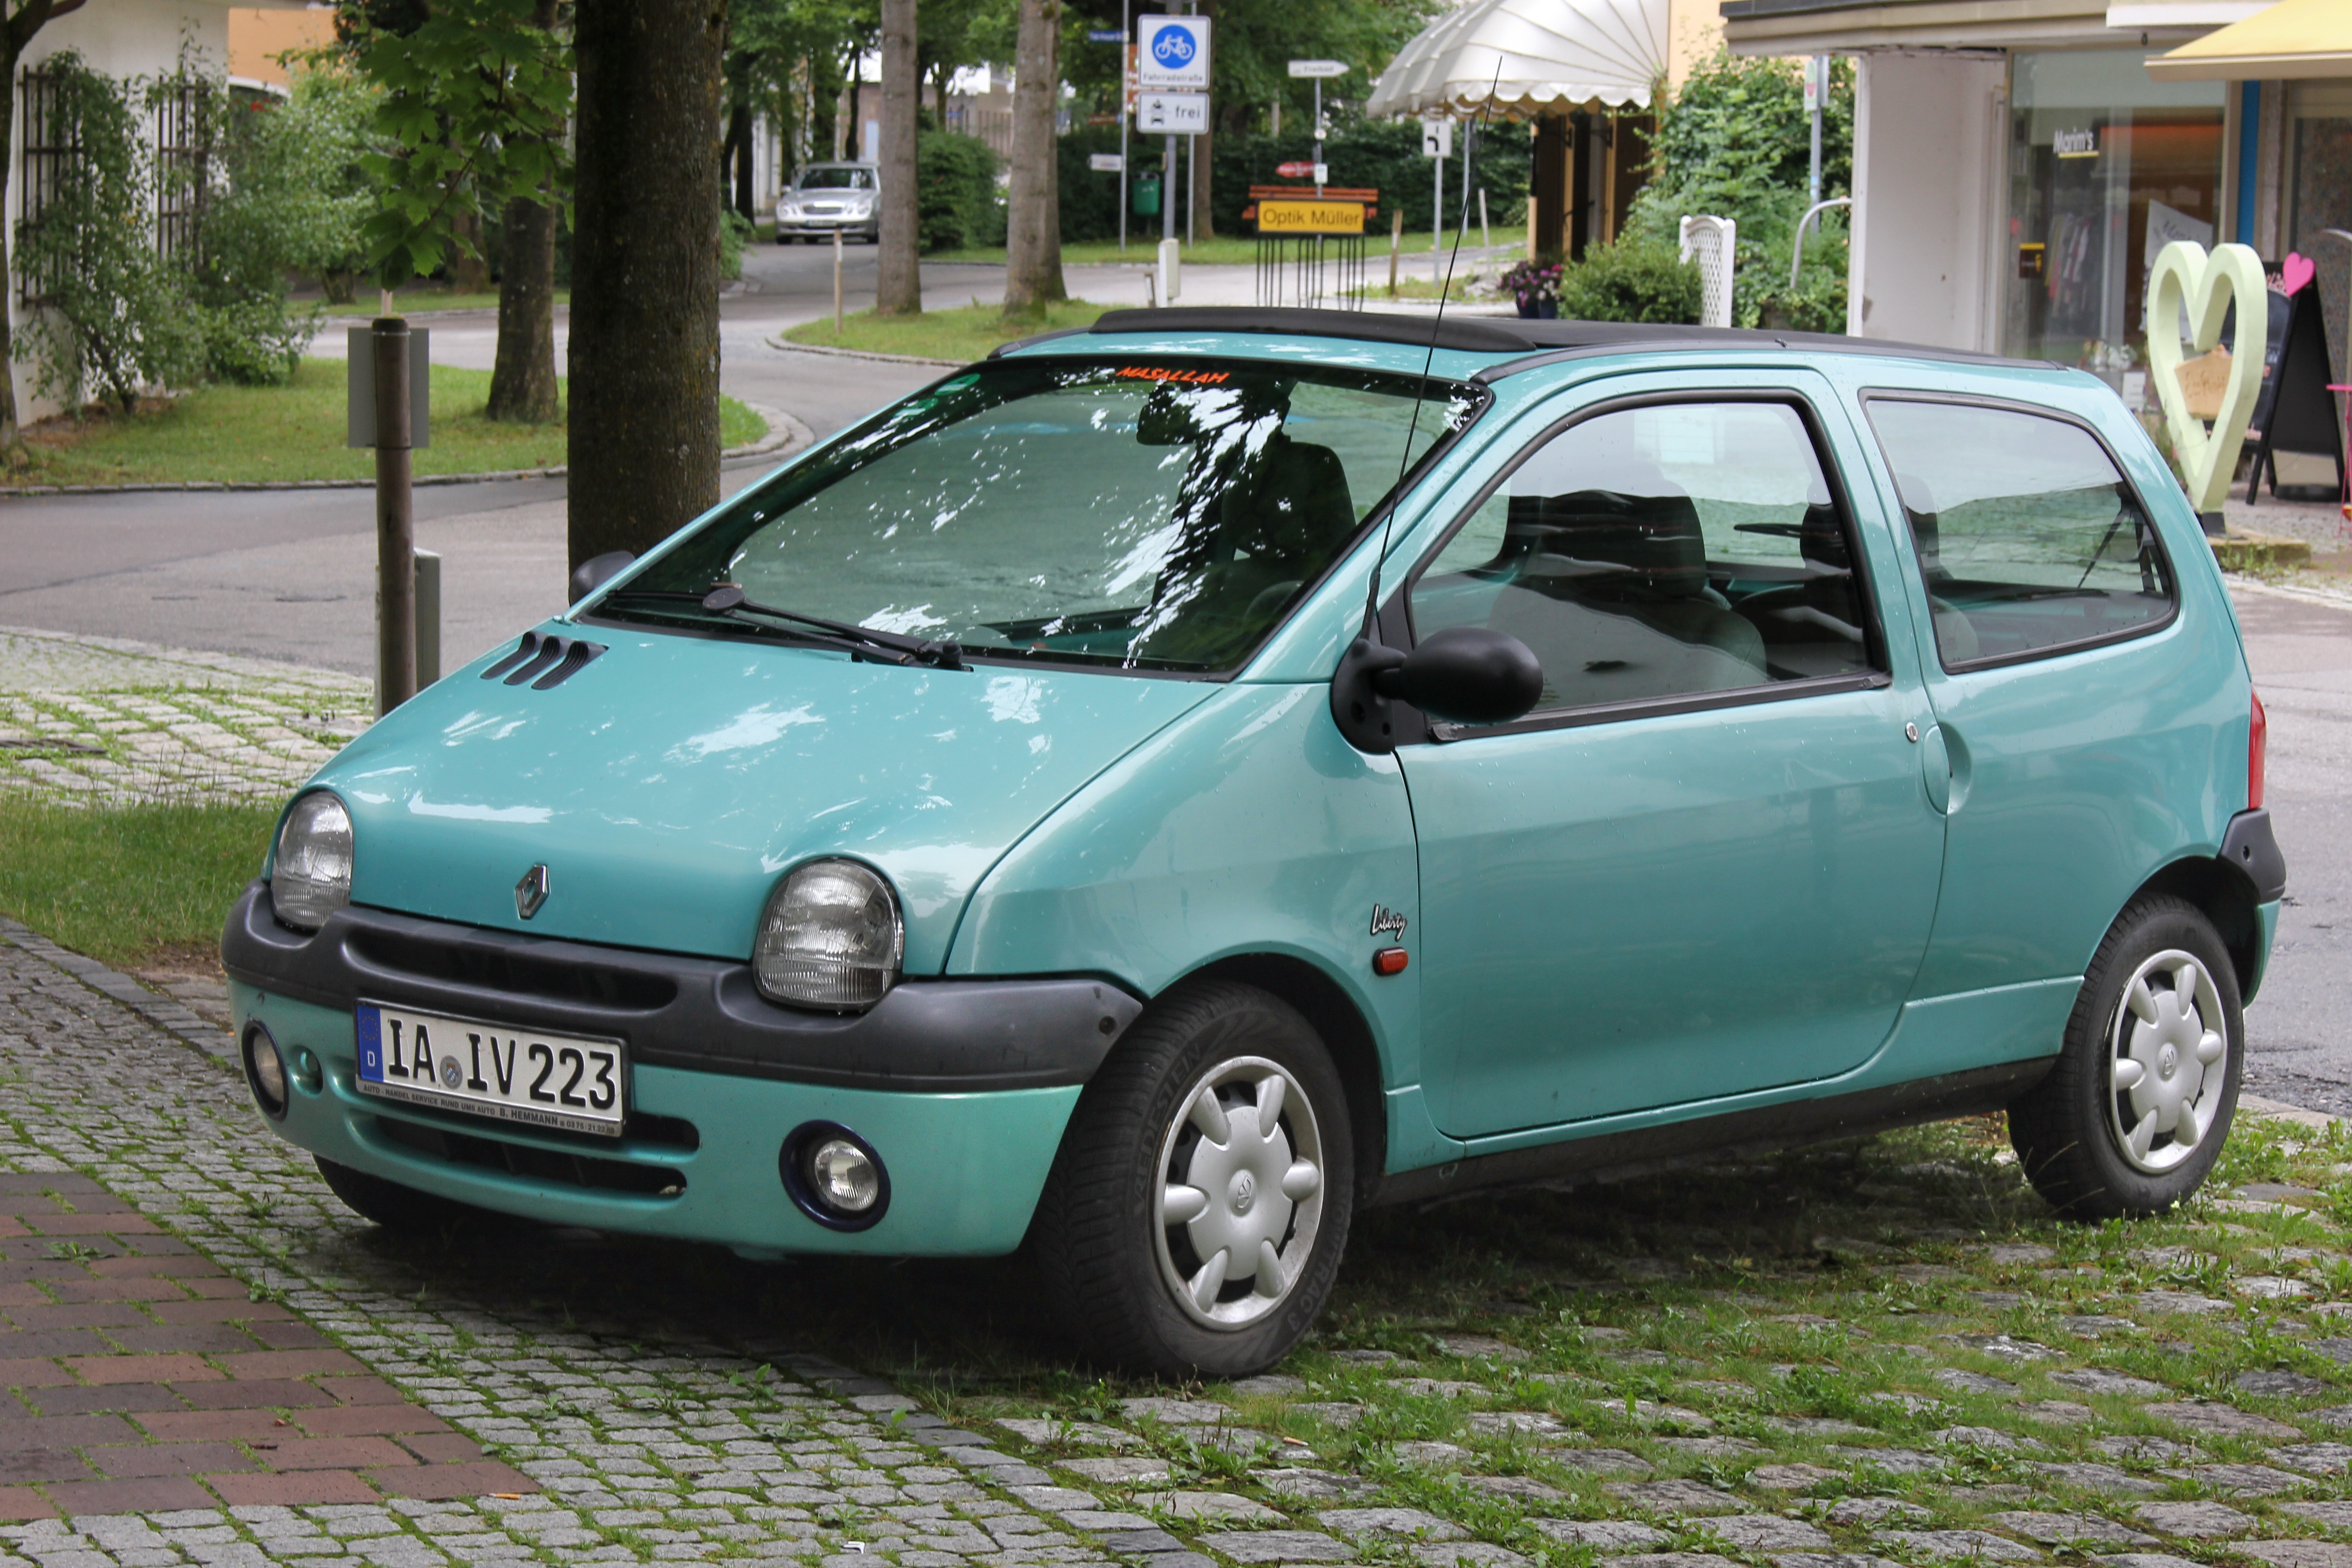 file renault twingo liberty 1 generation li vorn 2017 07 28 r jpg wikimedia commons. Black Bedroom Furniture Sets. Home Design Ideas